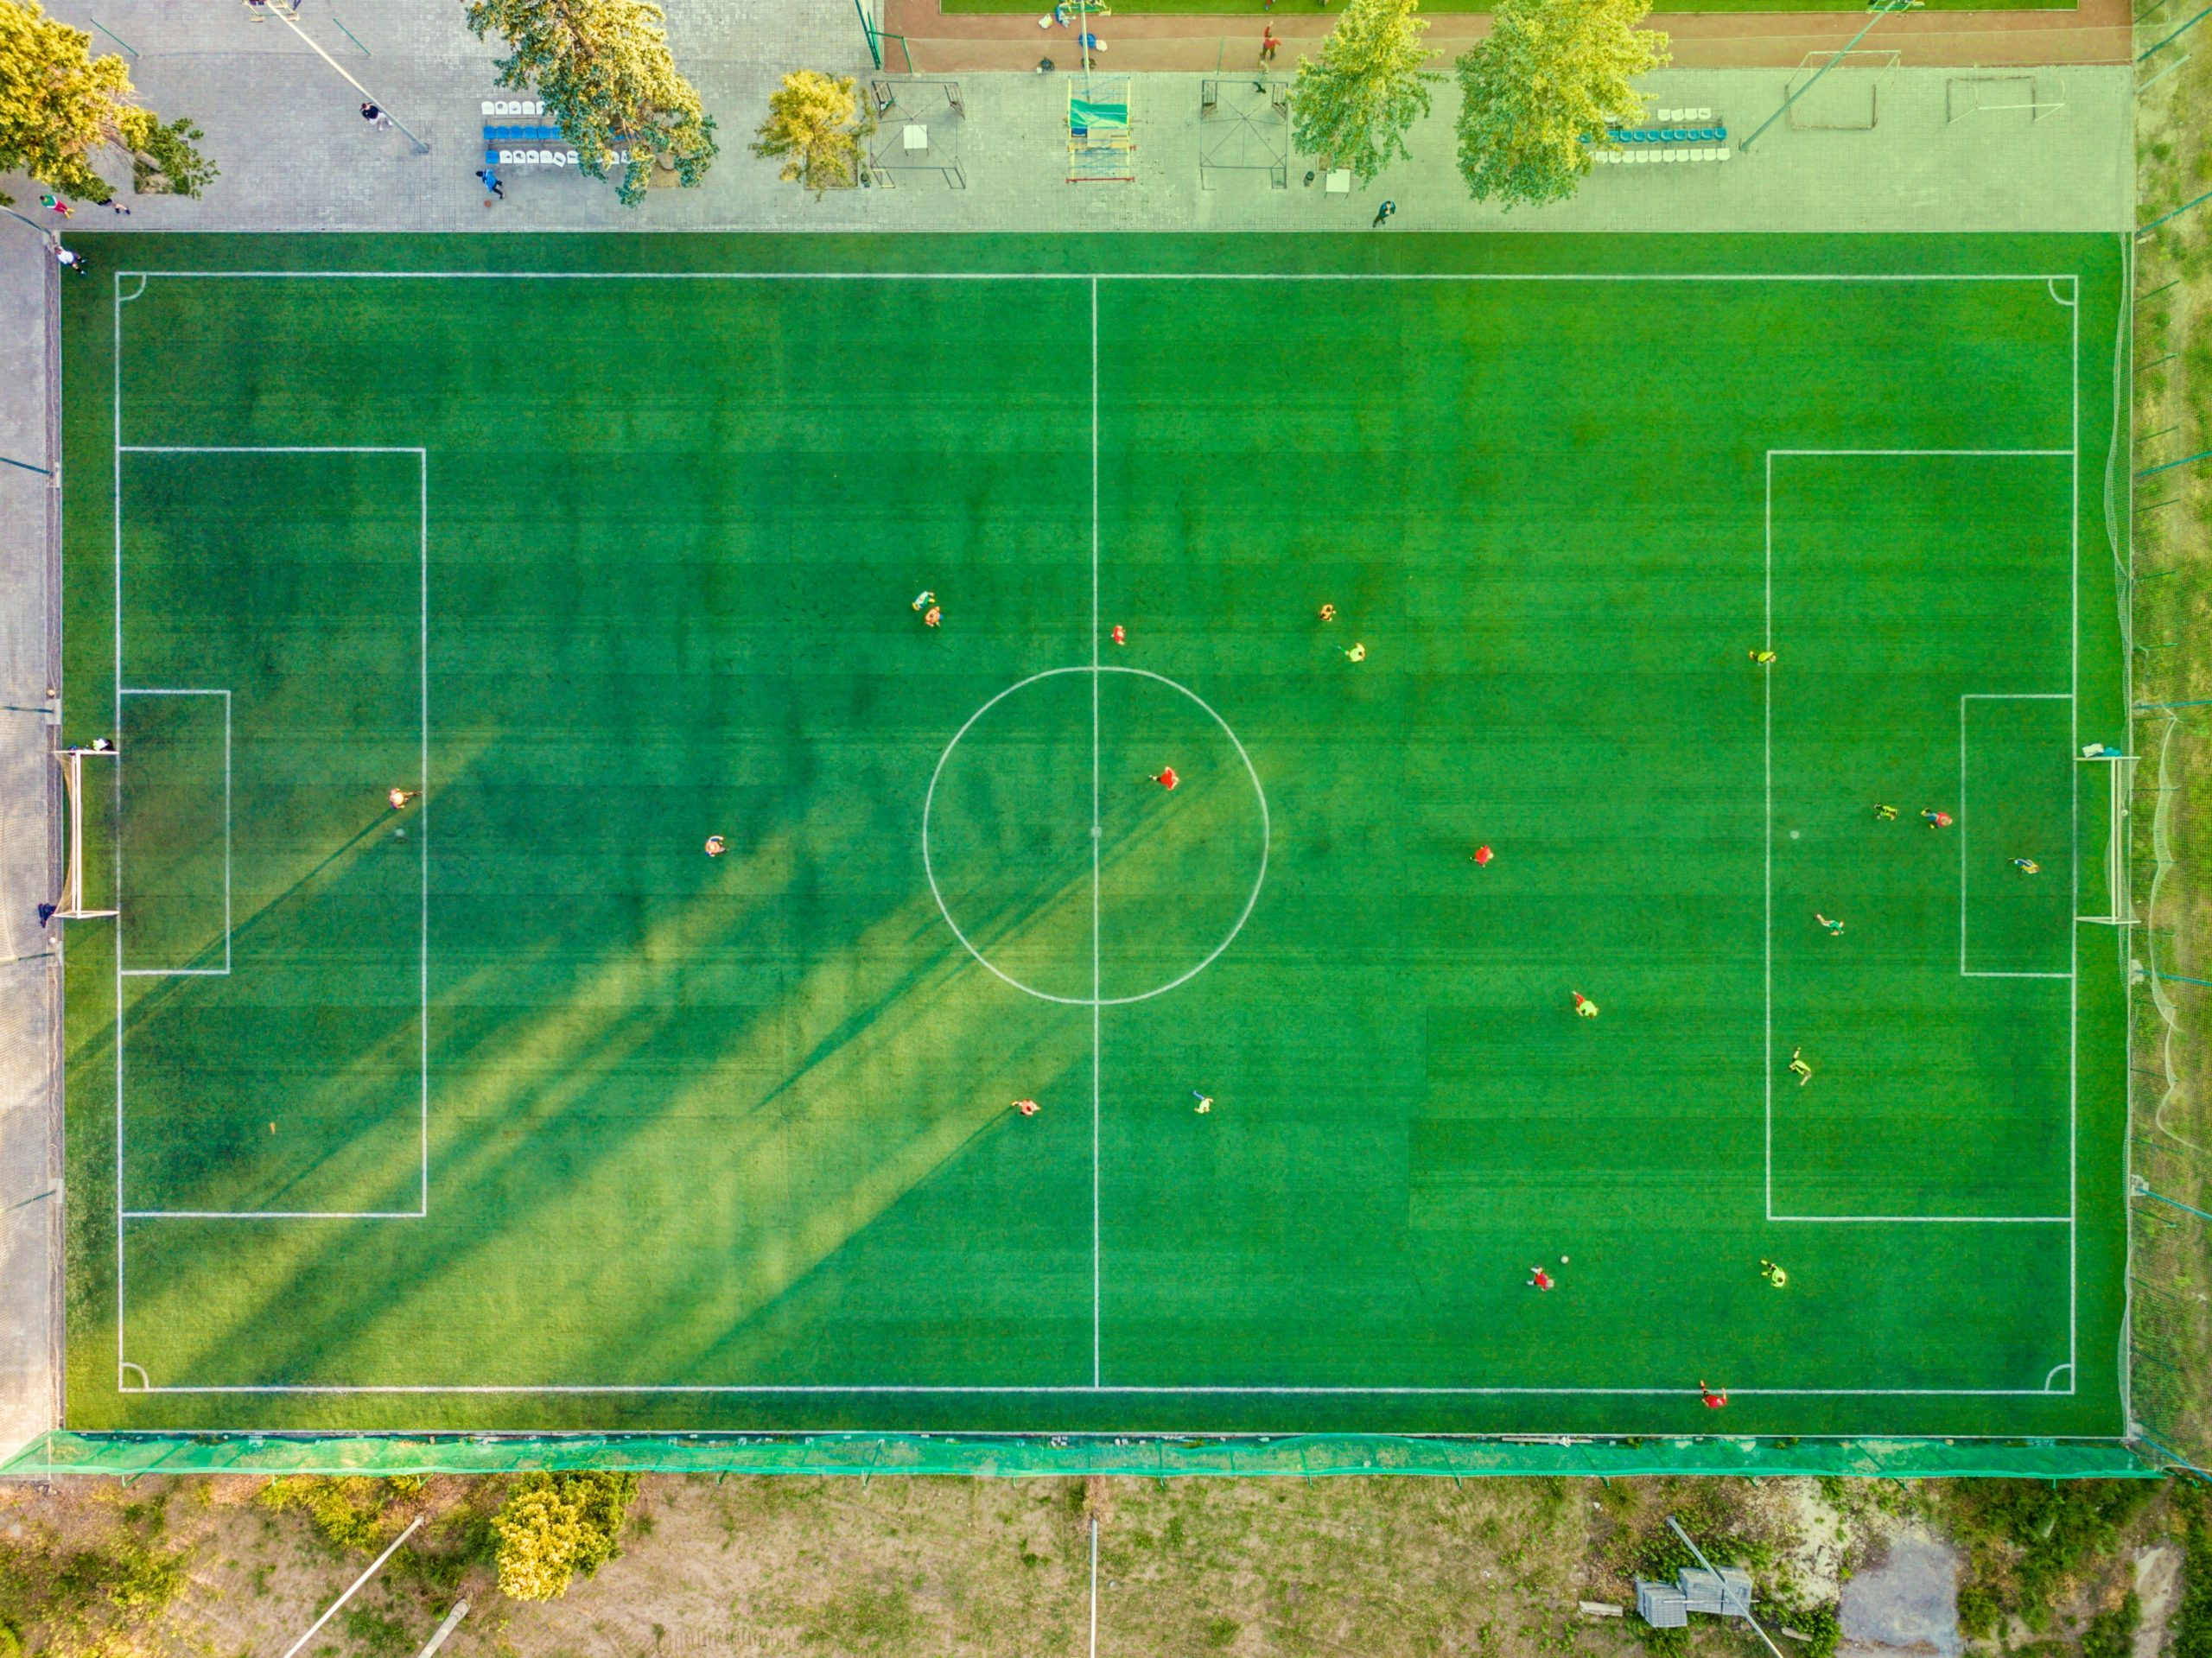 How to Play Football? – Football Rules and Regulations